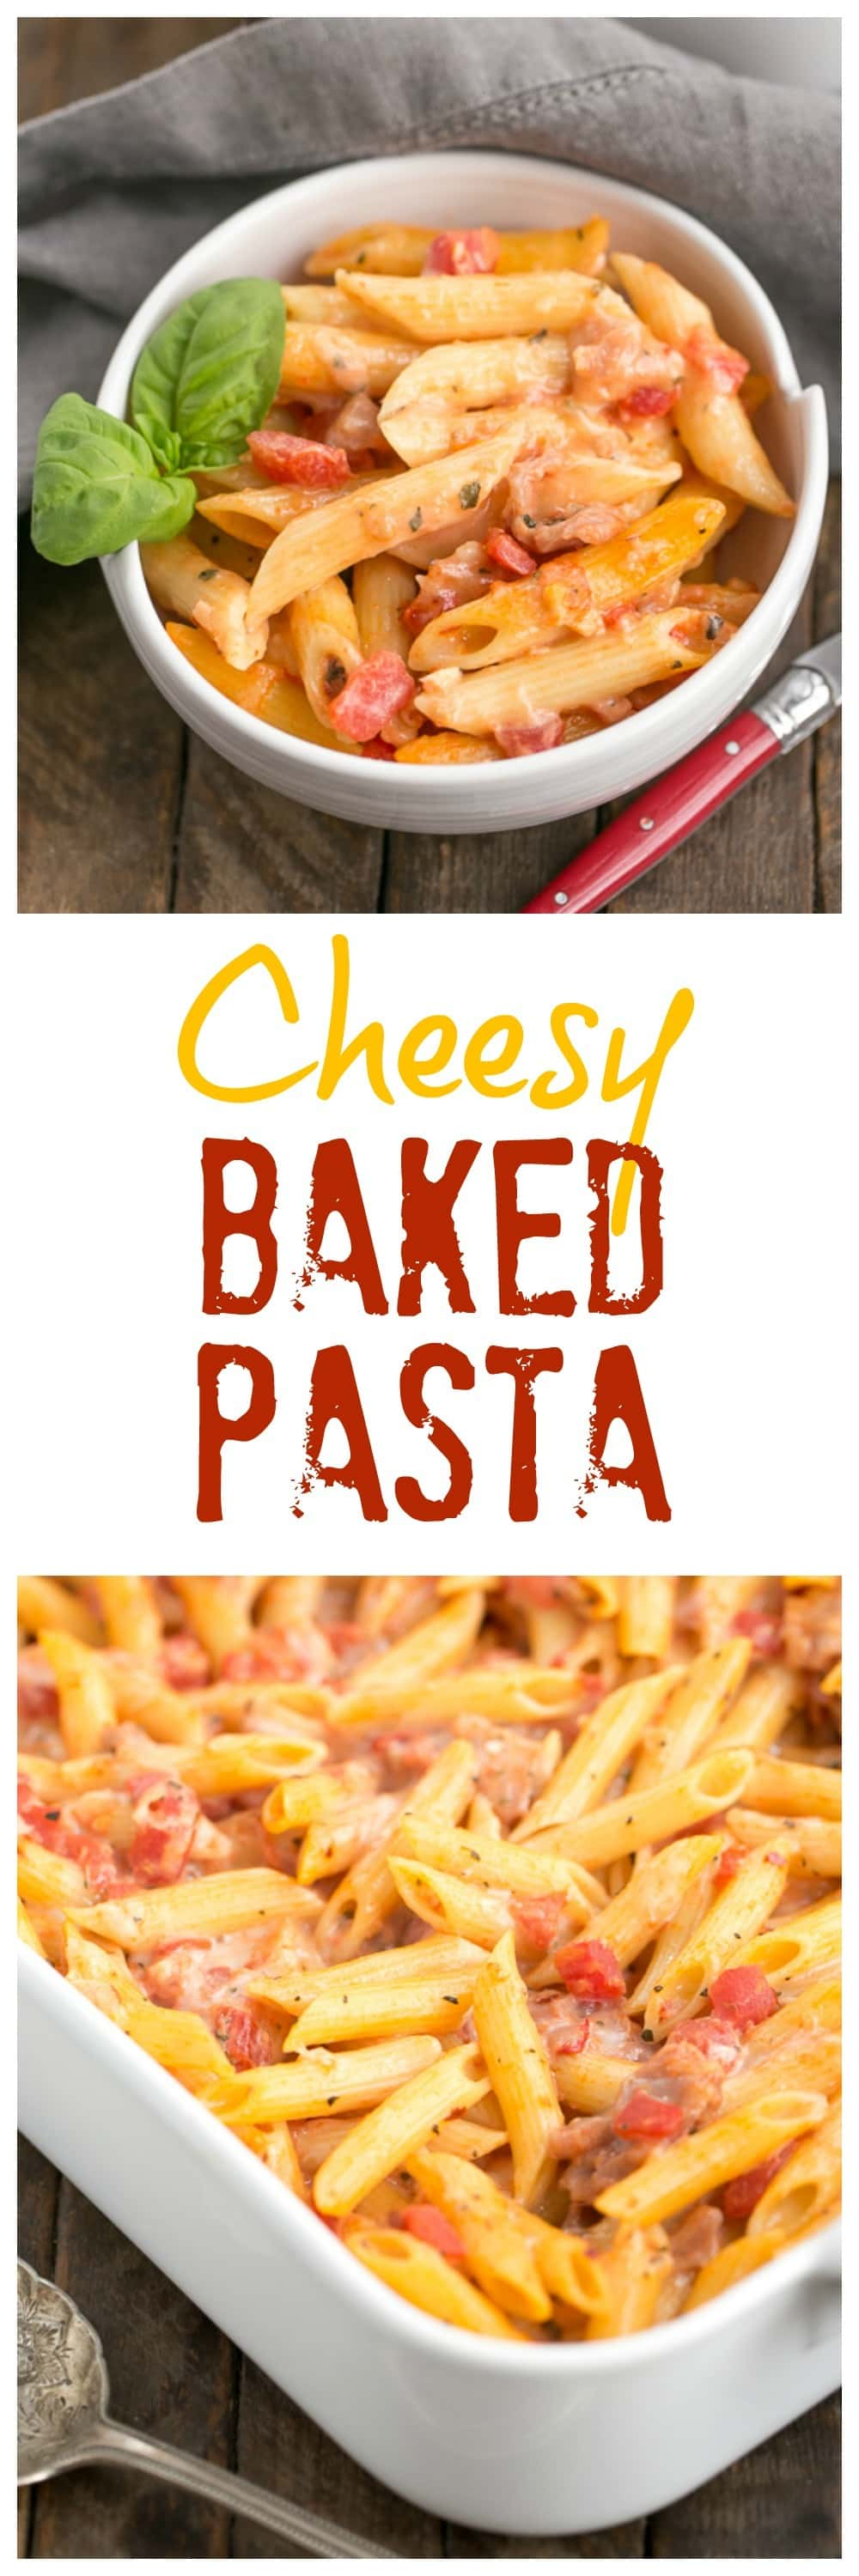 Cheesy Baked Pasta | Creamy pasta with 3 cheeses, basil and prosciutto